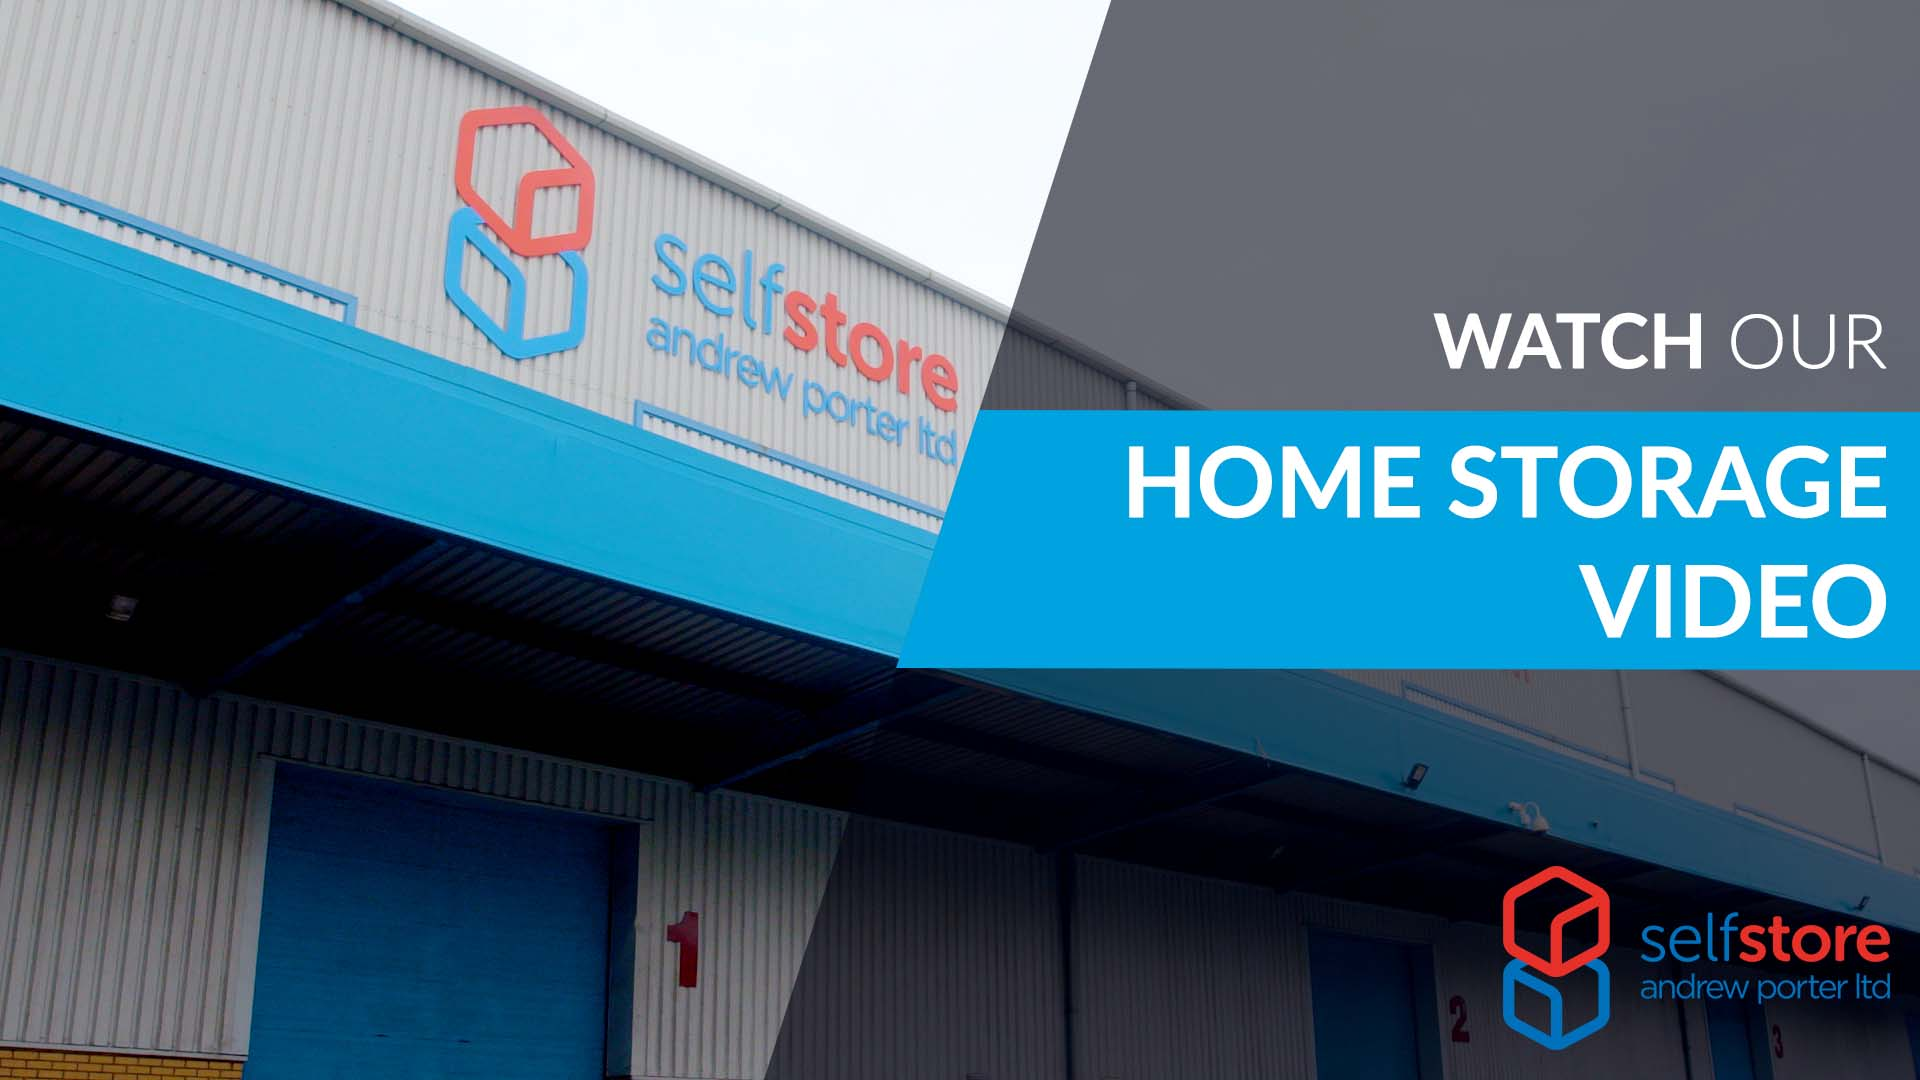 Self storage for home customers